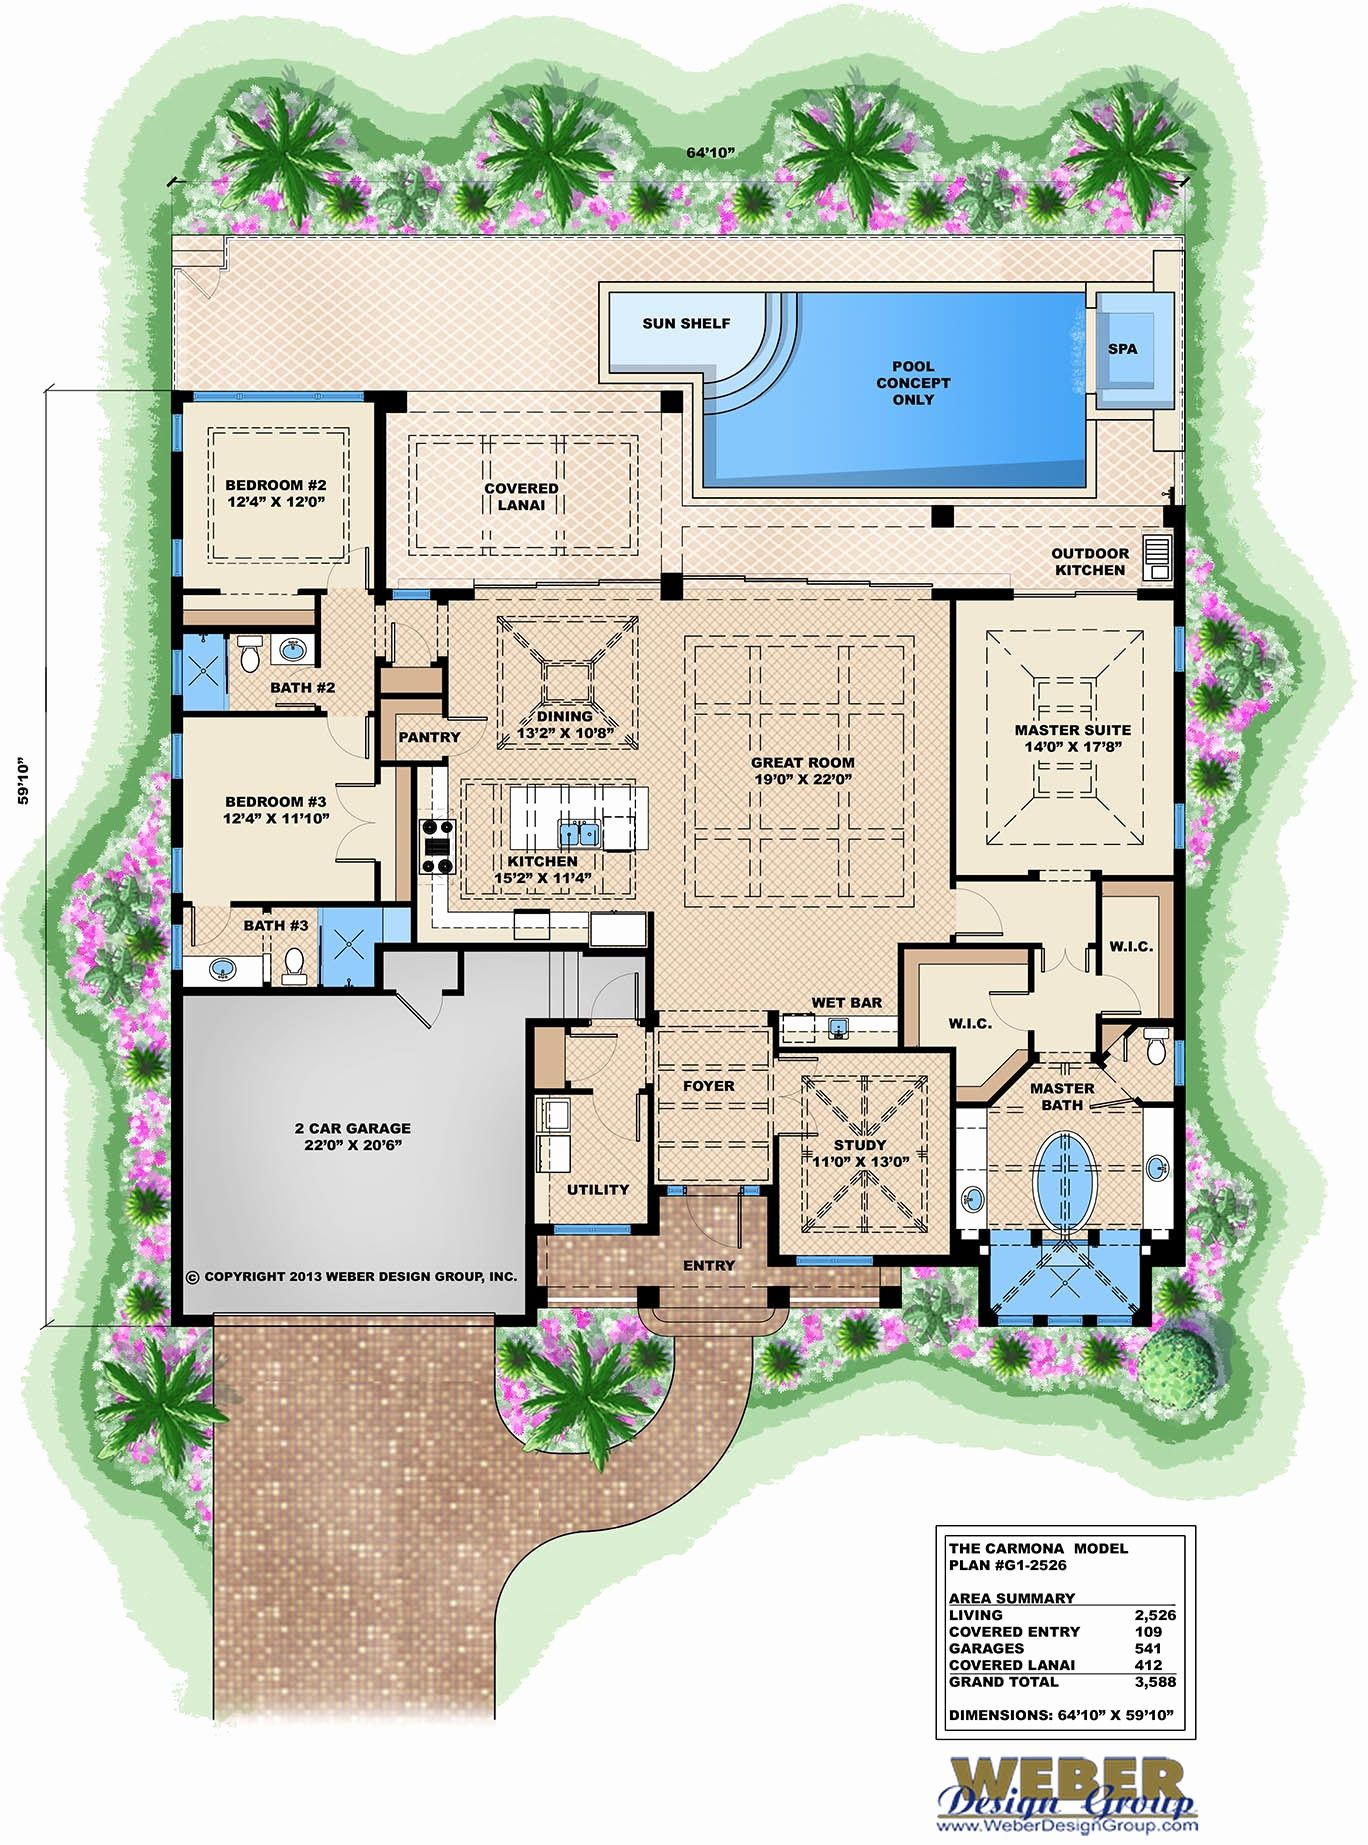 Story House Plans Lovely Key West 2 Modular Floor Three Home Florida House Plans Beach House Plans House Plans One Story